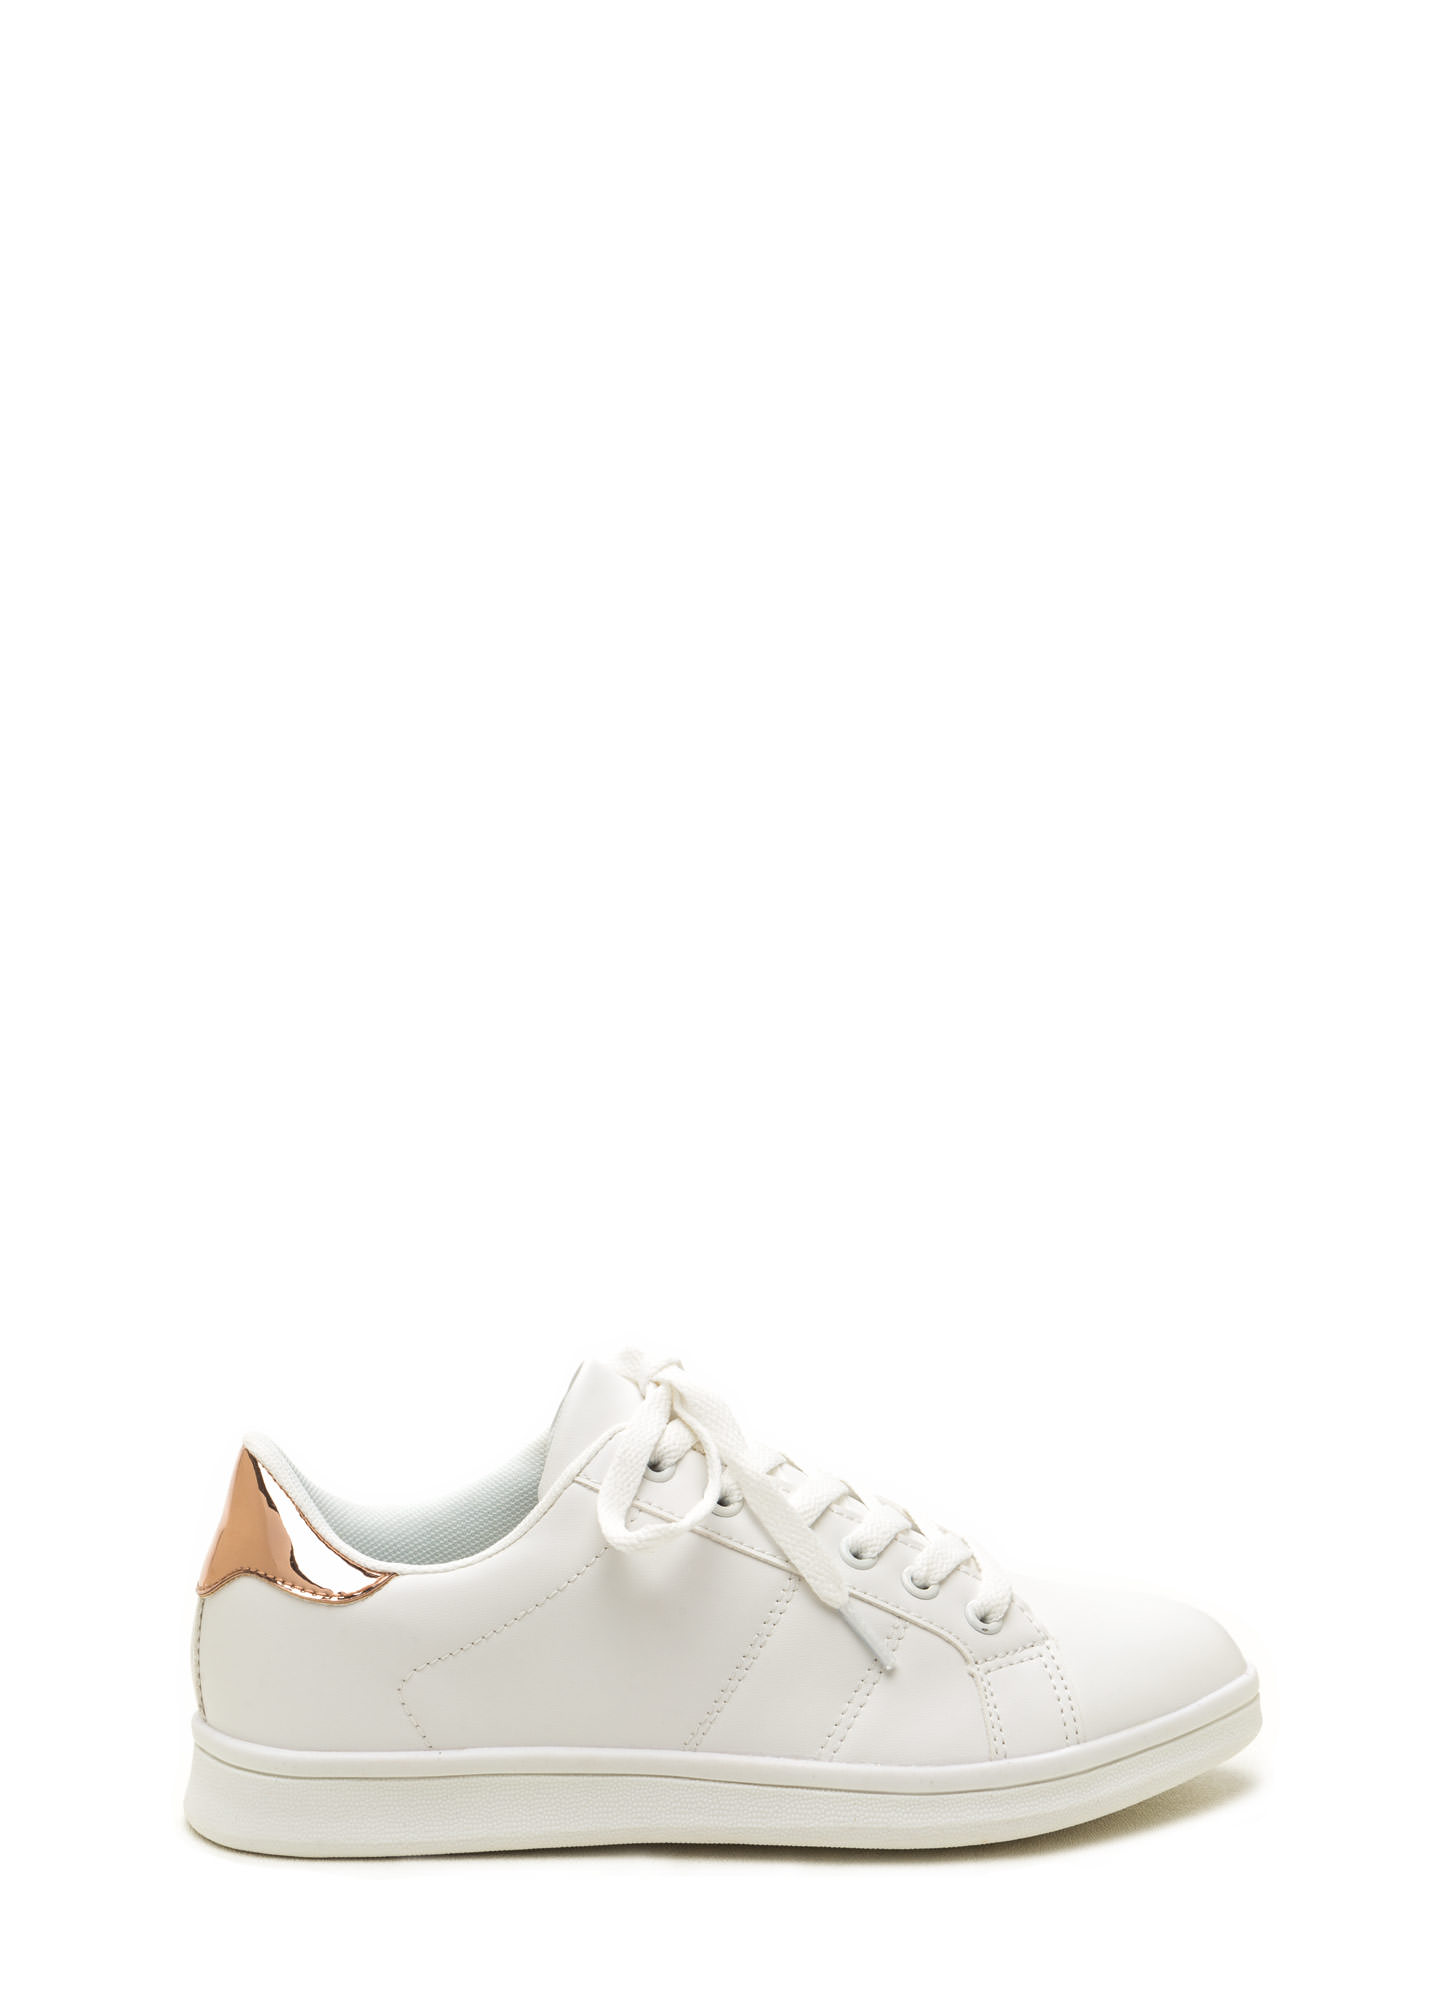 Courtside Faux Leather Contrast Sneakers WHITEROSEGLD